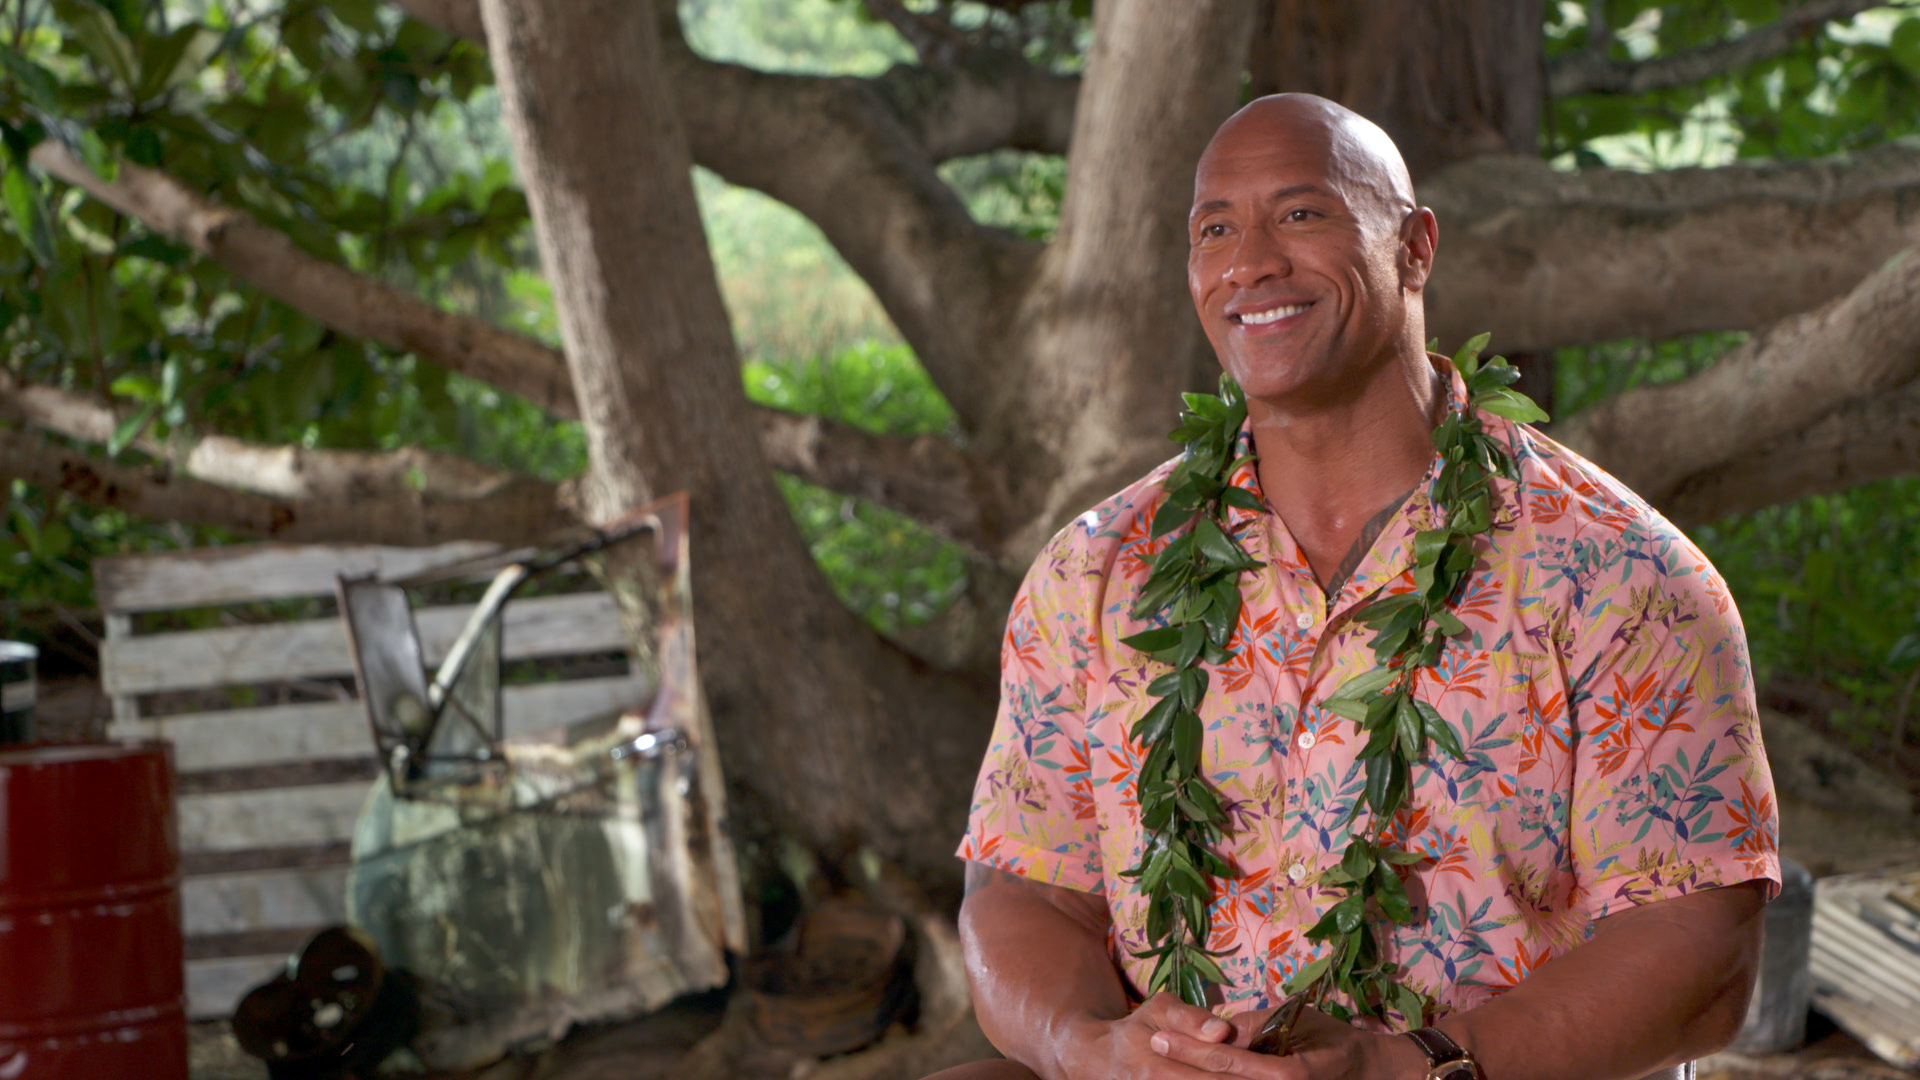 Dwayne 'The Rock' Johnson Marries Lauren Hashian In Hawaii